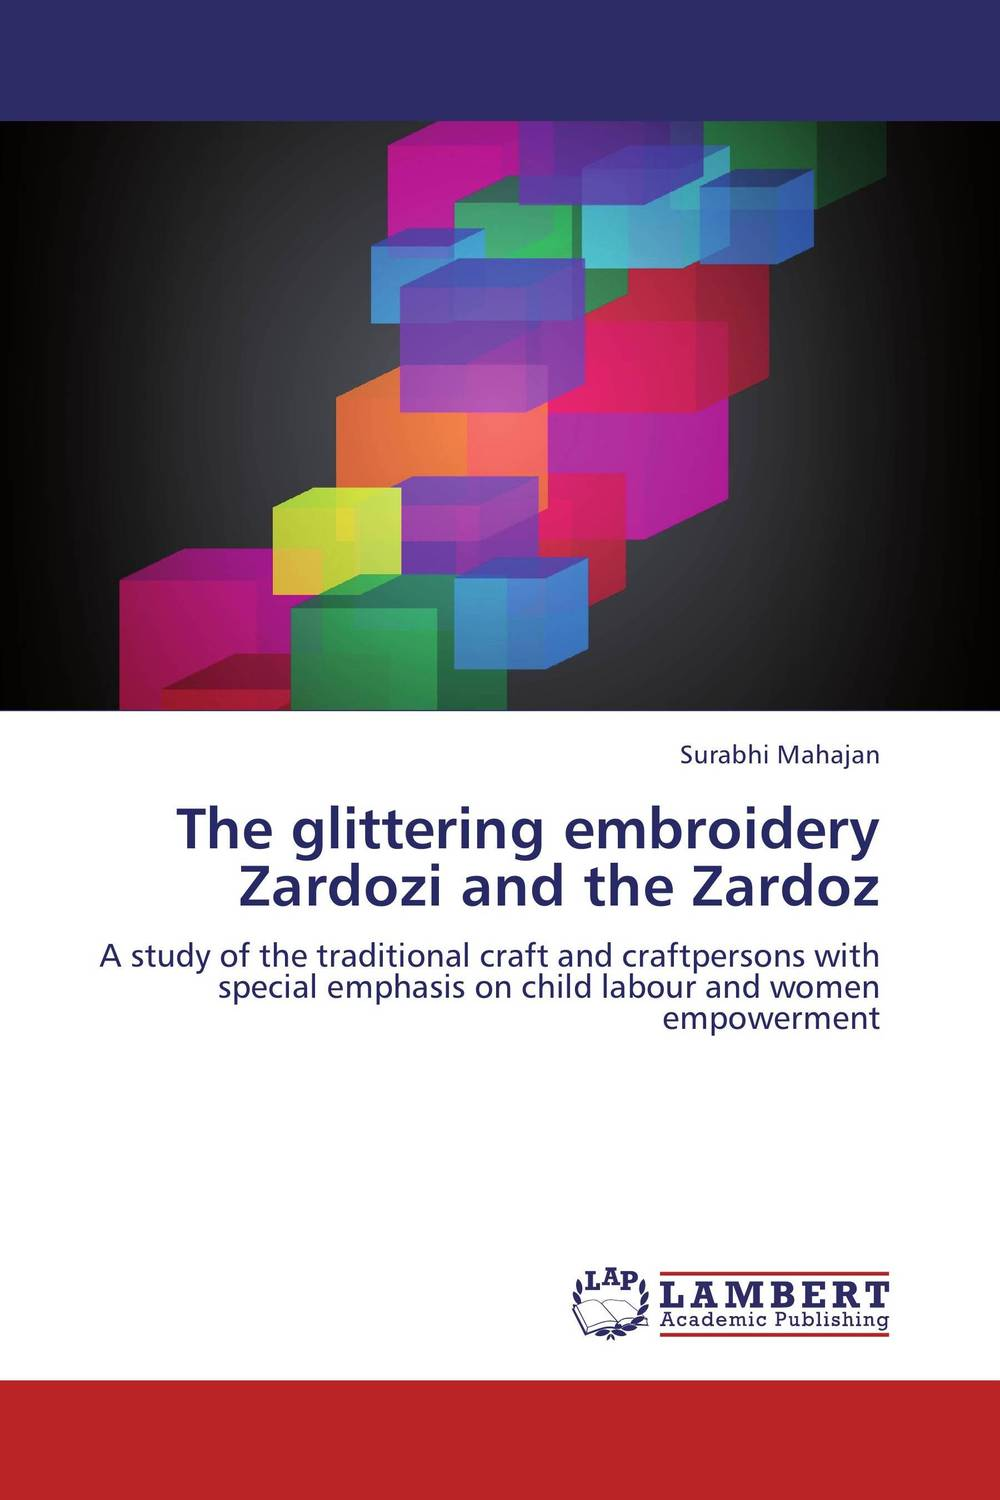 The glittering embroidery Zardozi and the Zardoz dear zari